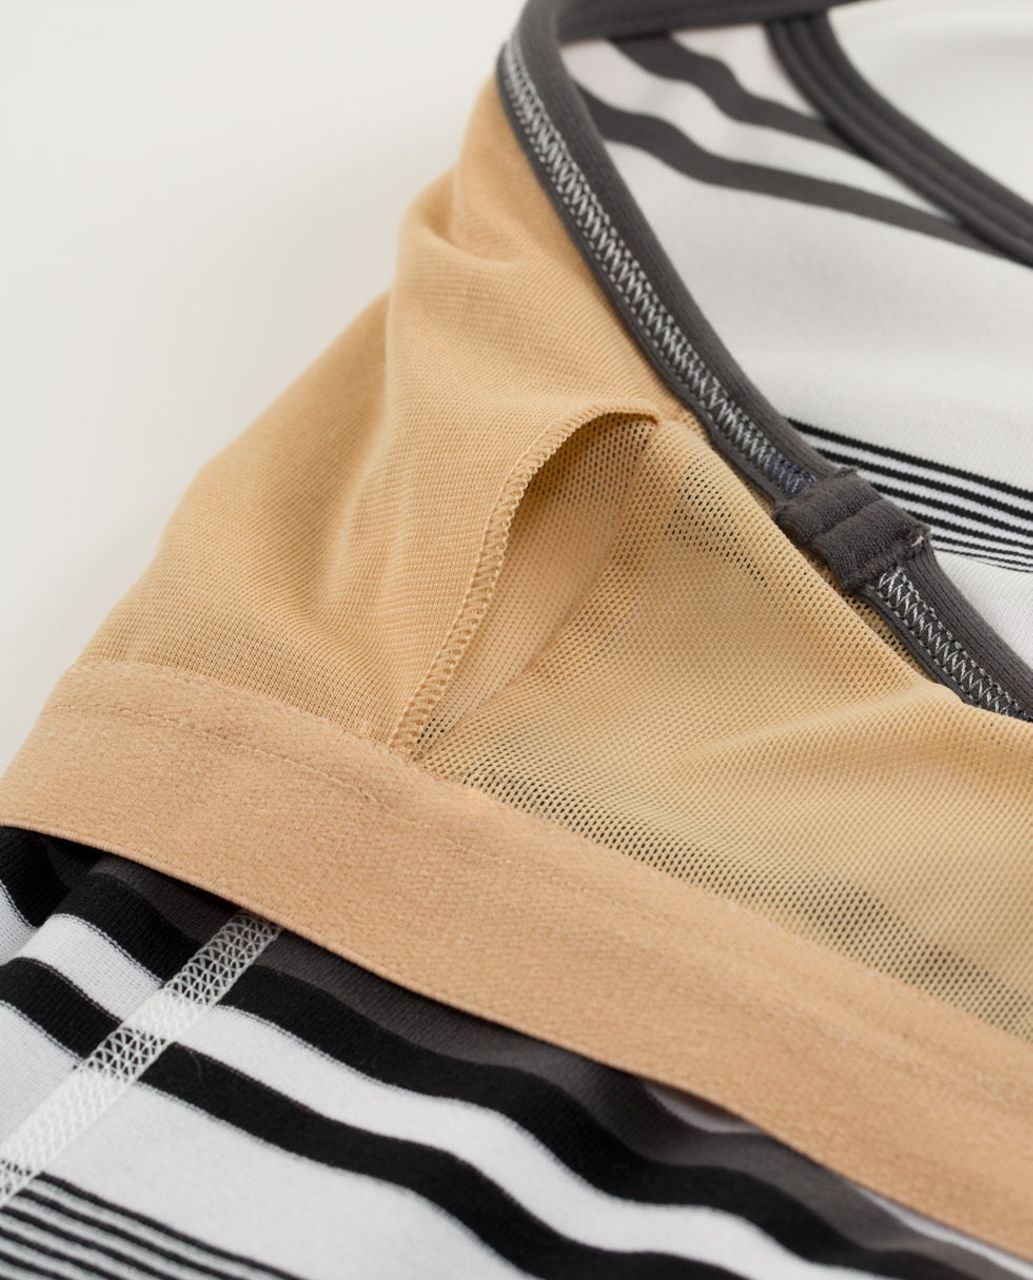 Lululemon Power Y Tank *Luon Light - Groovy Stripe Nimbus / Soot Light